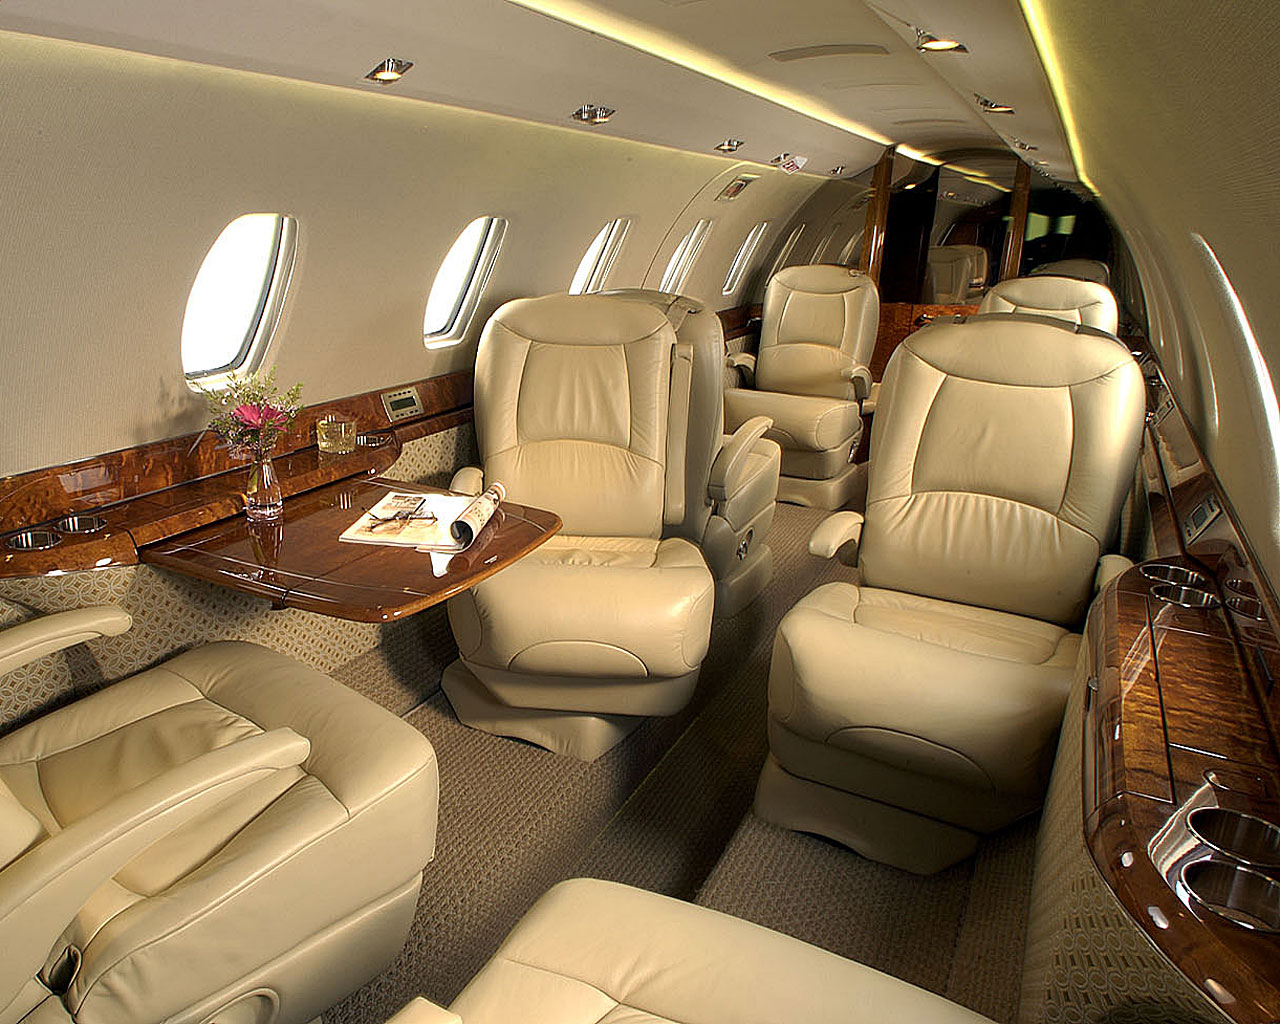 Luxury Jets for Private Jet Travel - Private Luxury Jets ...